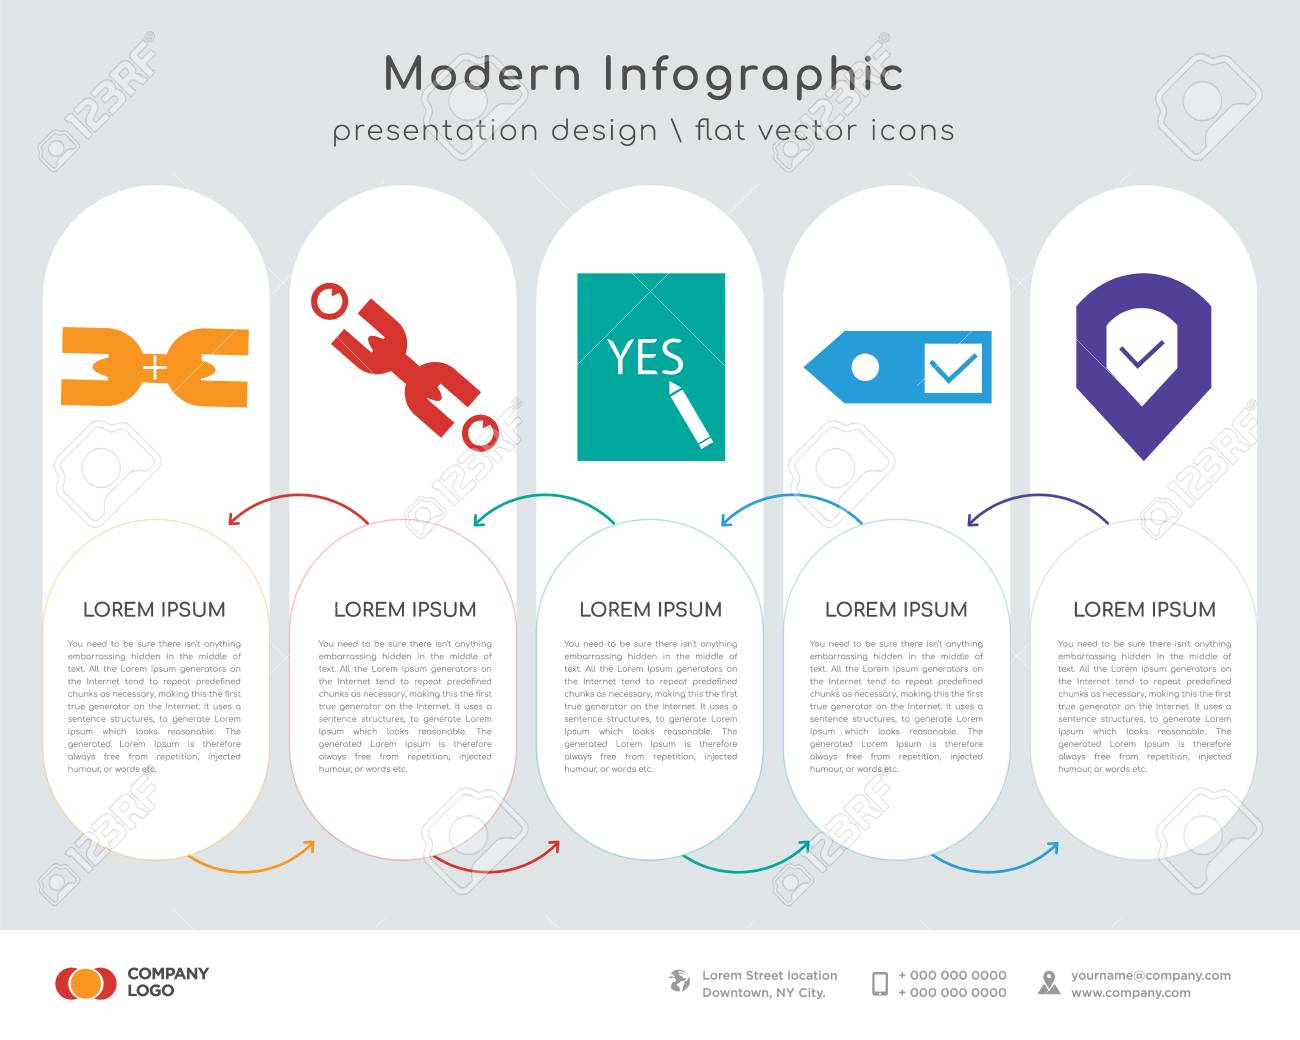 Infographics design vector and chain, chain, yes, , done icons can on layout poster, layout animation, layout chart, layout icon, layout plan, layout map, layout tools, layout paper, layout sketch,